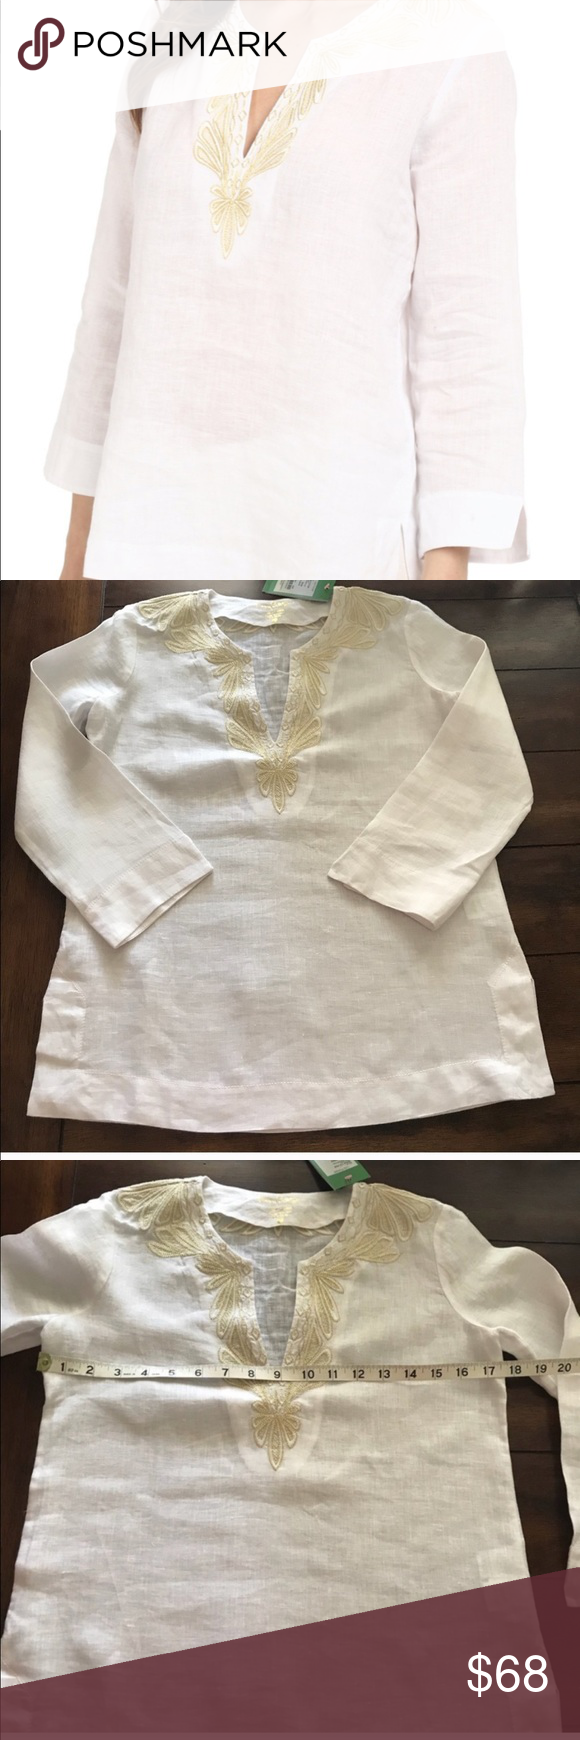 Lilly Pulitzer Amelia Island white linen tunic Lilly Pulitzer Amelia Island white 100% linen tunic with gold v-neck detail. New with tags and all measurements included in photos. Tops Tunics #linentunic